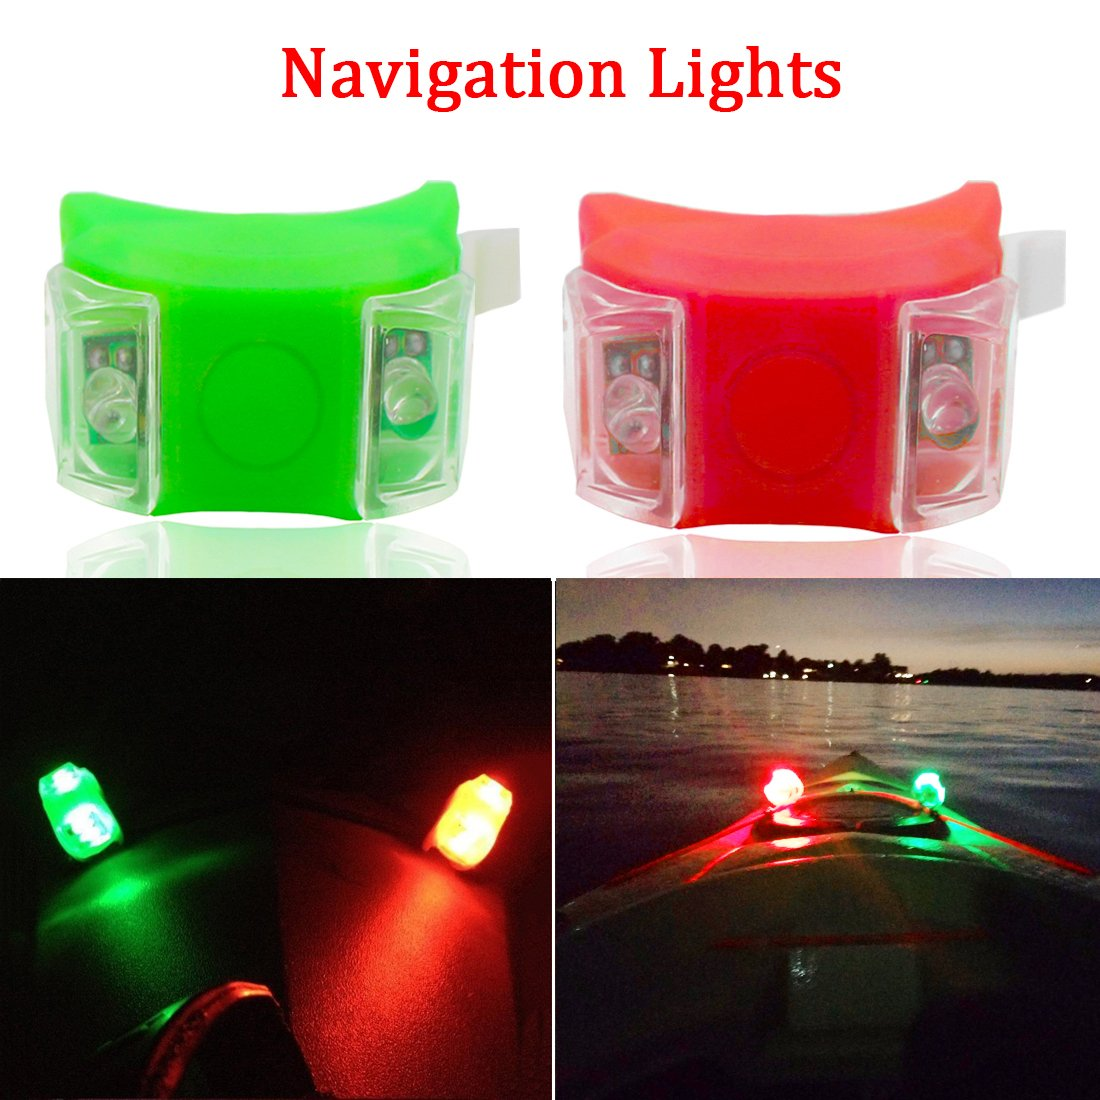 Botepon Marine Boat Bow Lights, Red and Green Led Navigation Lights, Kayak Accessories, Marine Safety Lights Battery Operated for Boat Pontoon Kayak Yacht Motorboat Vessel Dinghy Catamaran by Botepon